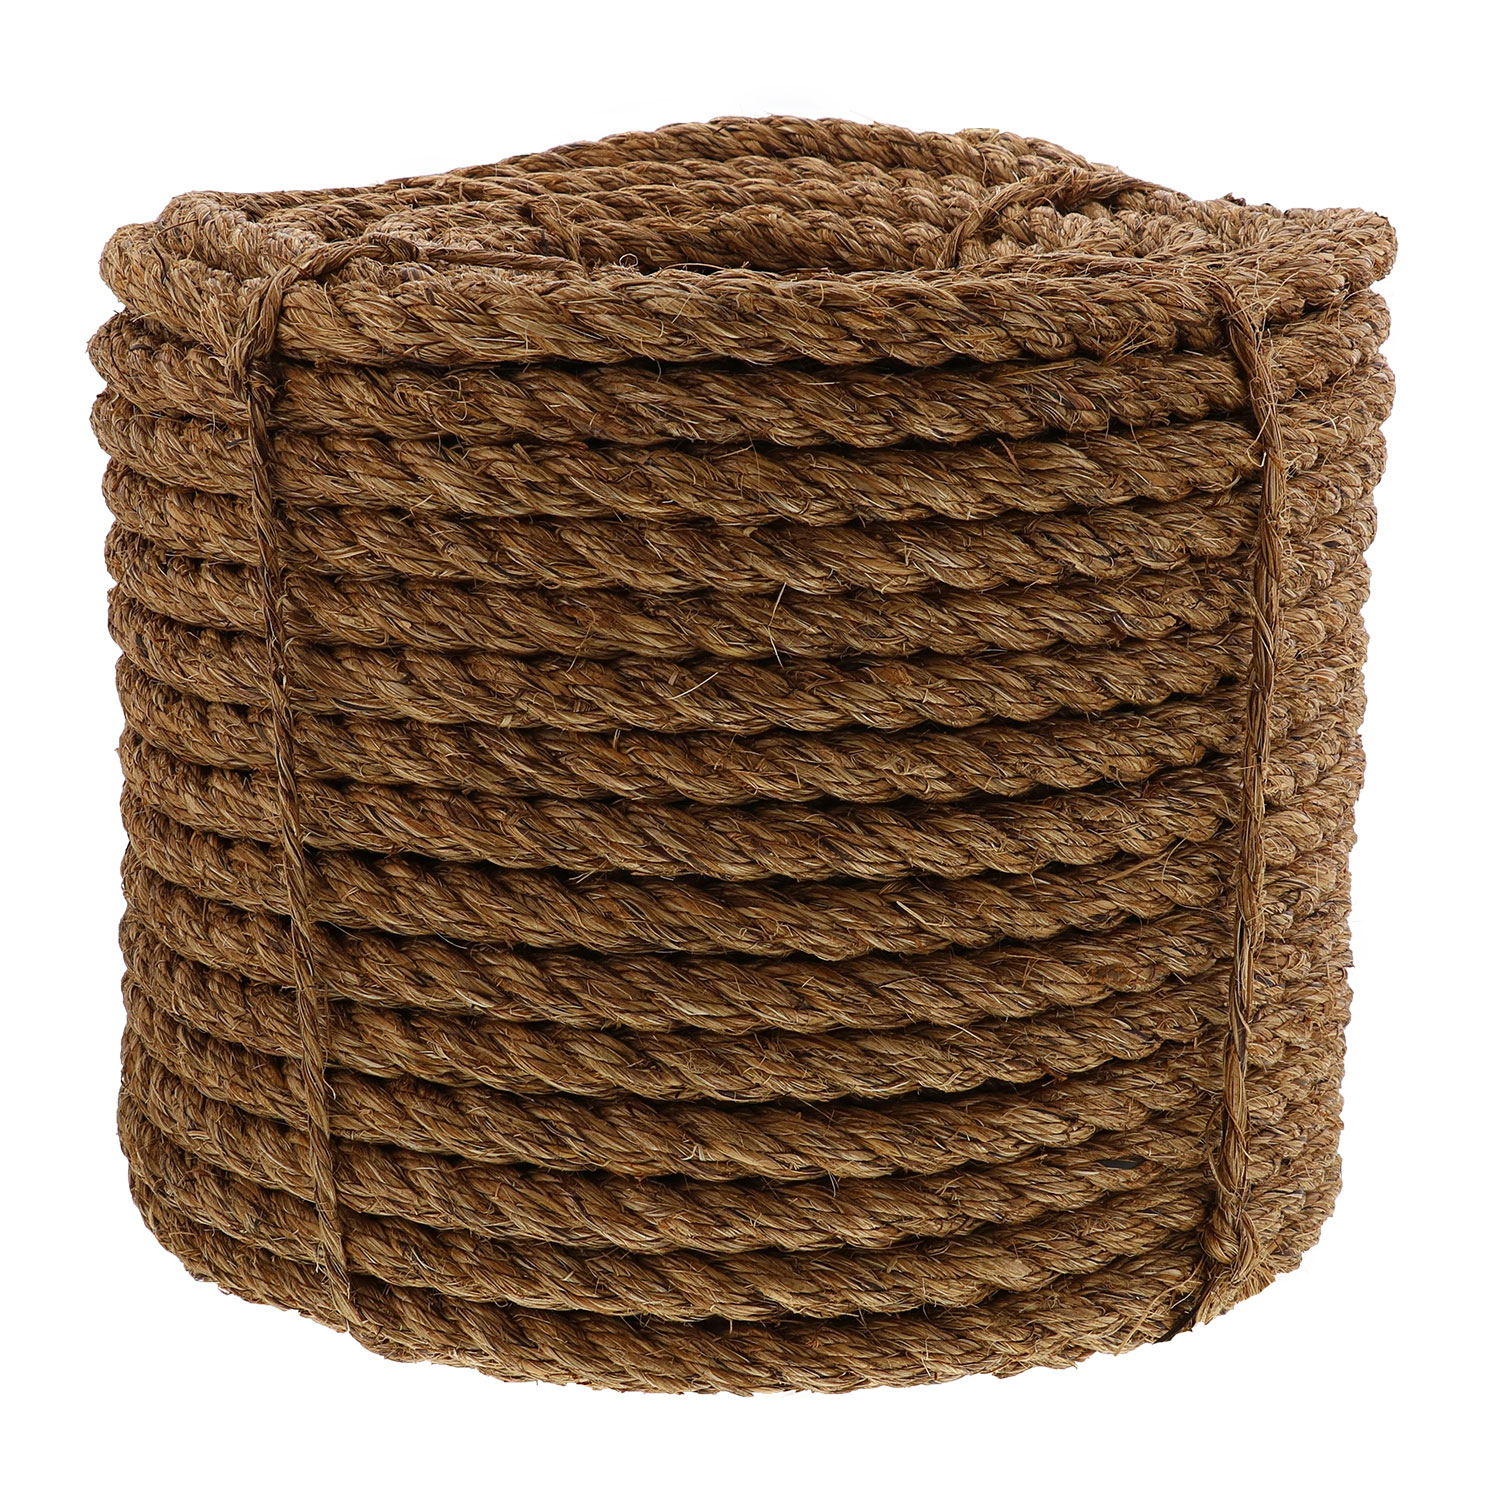 "3/4"" x 600' Coil, 3-Strand Manila Rope Image 1"